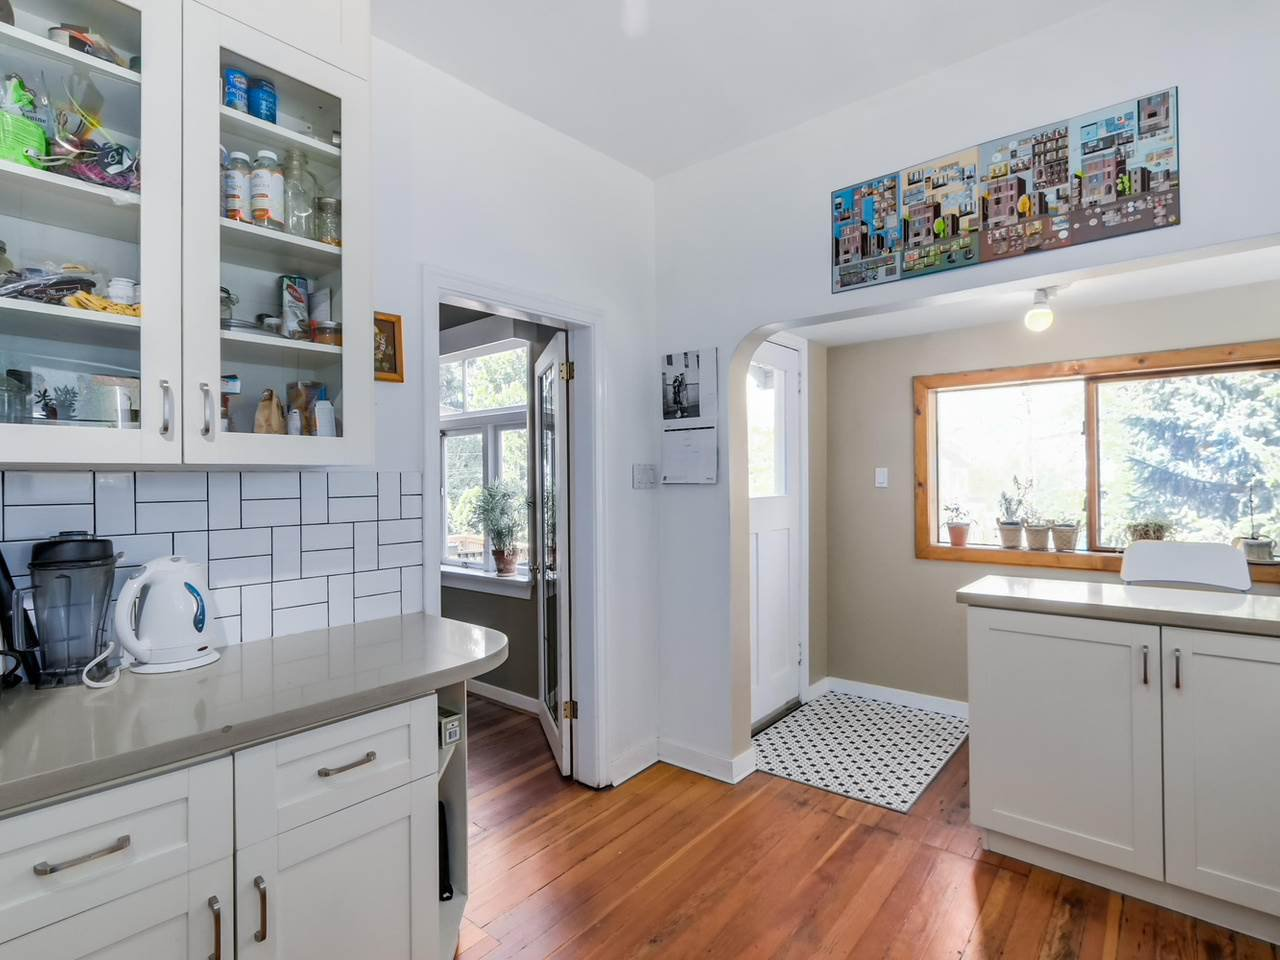 """Photo 10: Photos: 835 E 19TH Avenue in Vancouver: Fraser VE House for sale in """"CEDAR COTTAGE"""" (Vancouver East)  : MLS®# R2071745"""